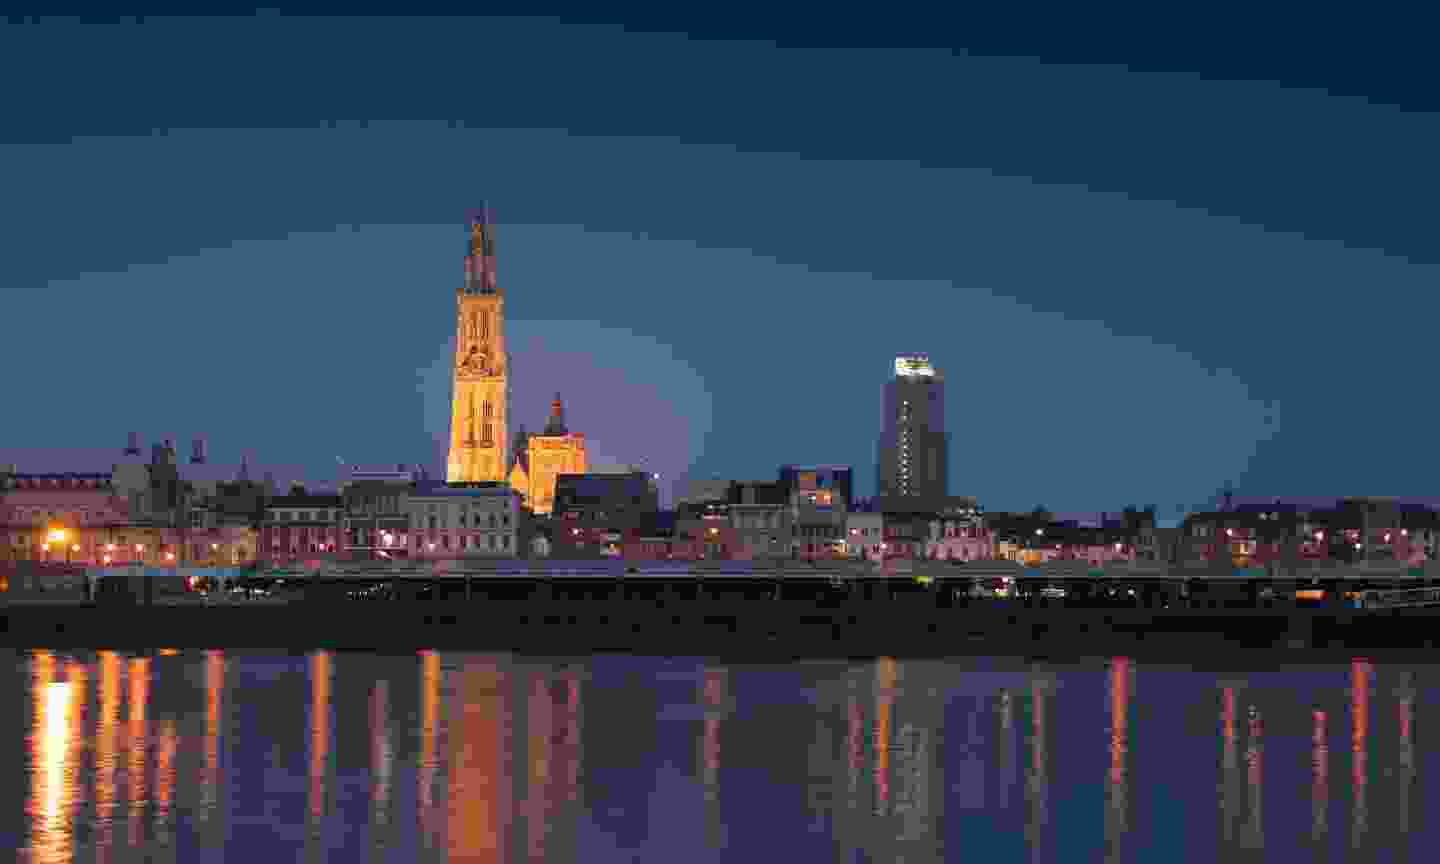 The skyline of Antwerp by night (Dreamstime)